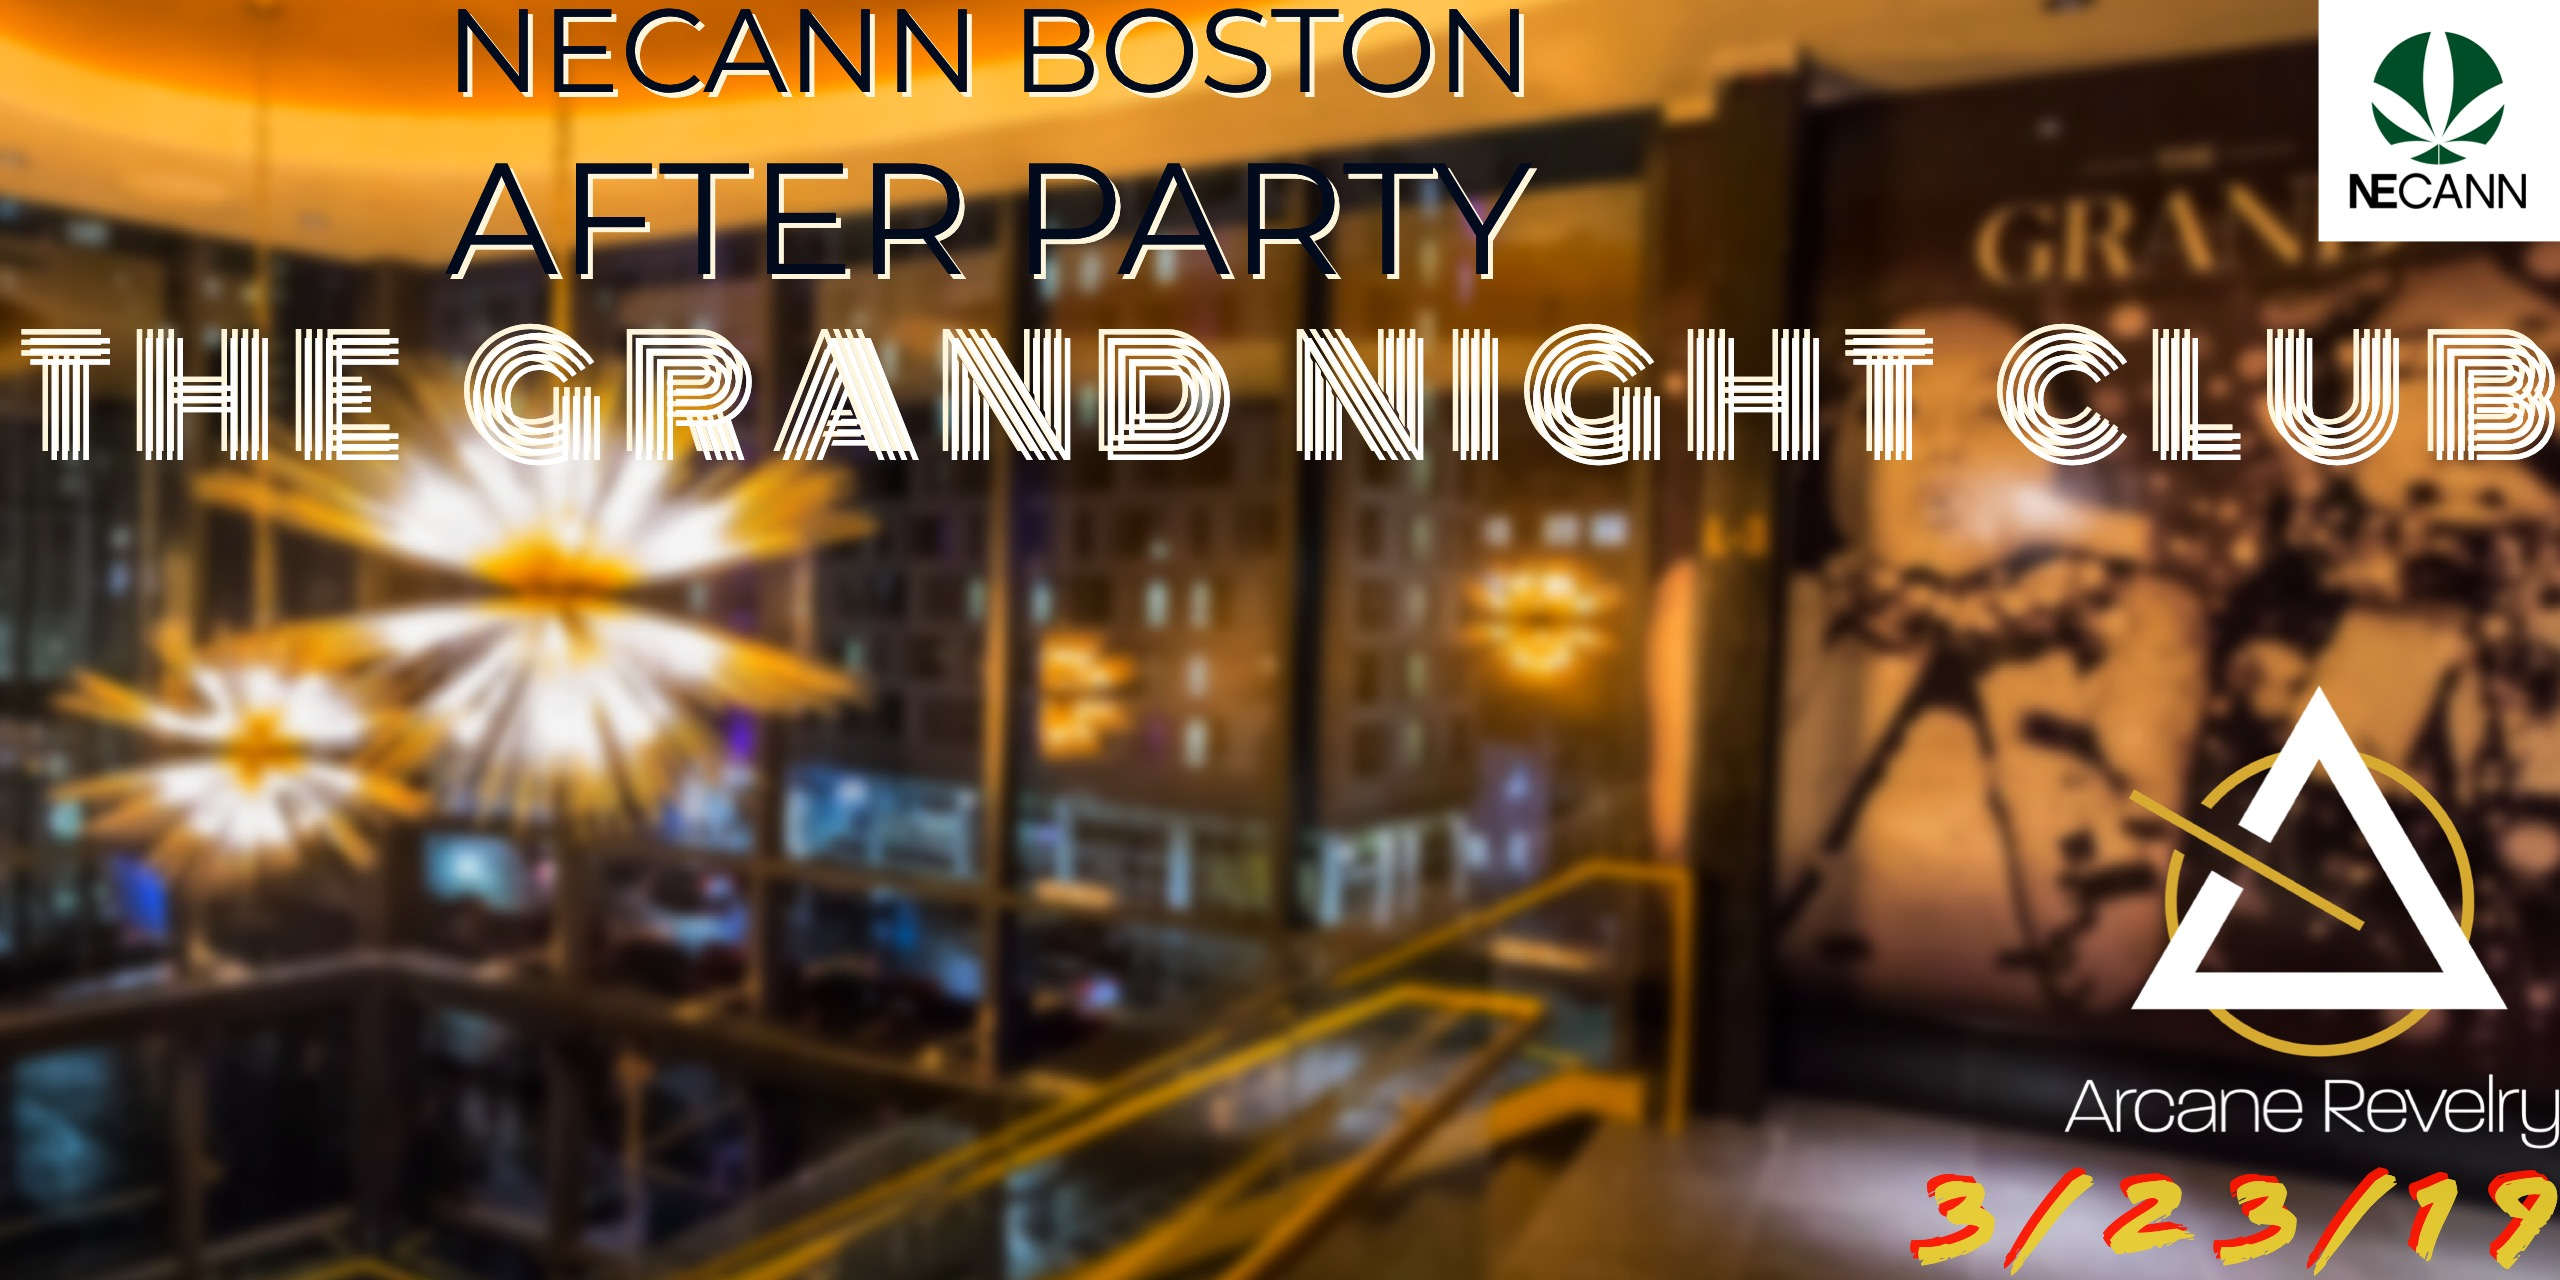 Arcane Revelry, Boston MA- NECANN AFTER PARTY @ THE GRAND